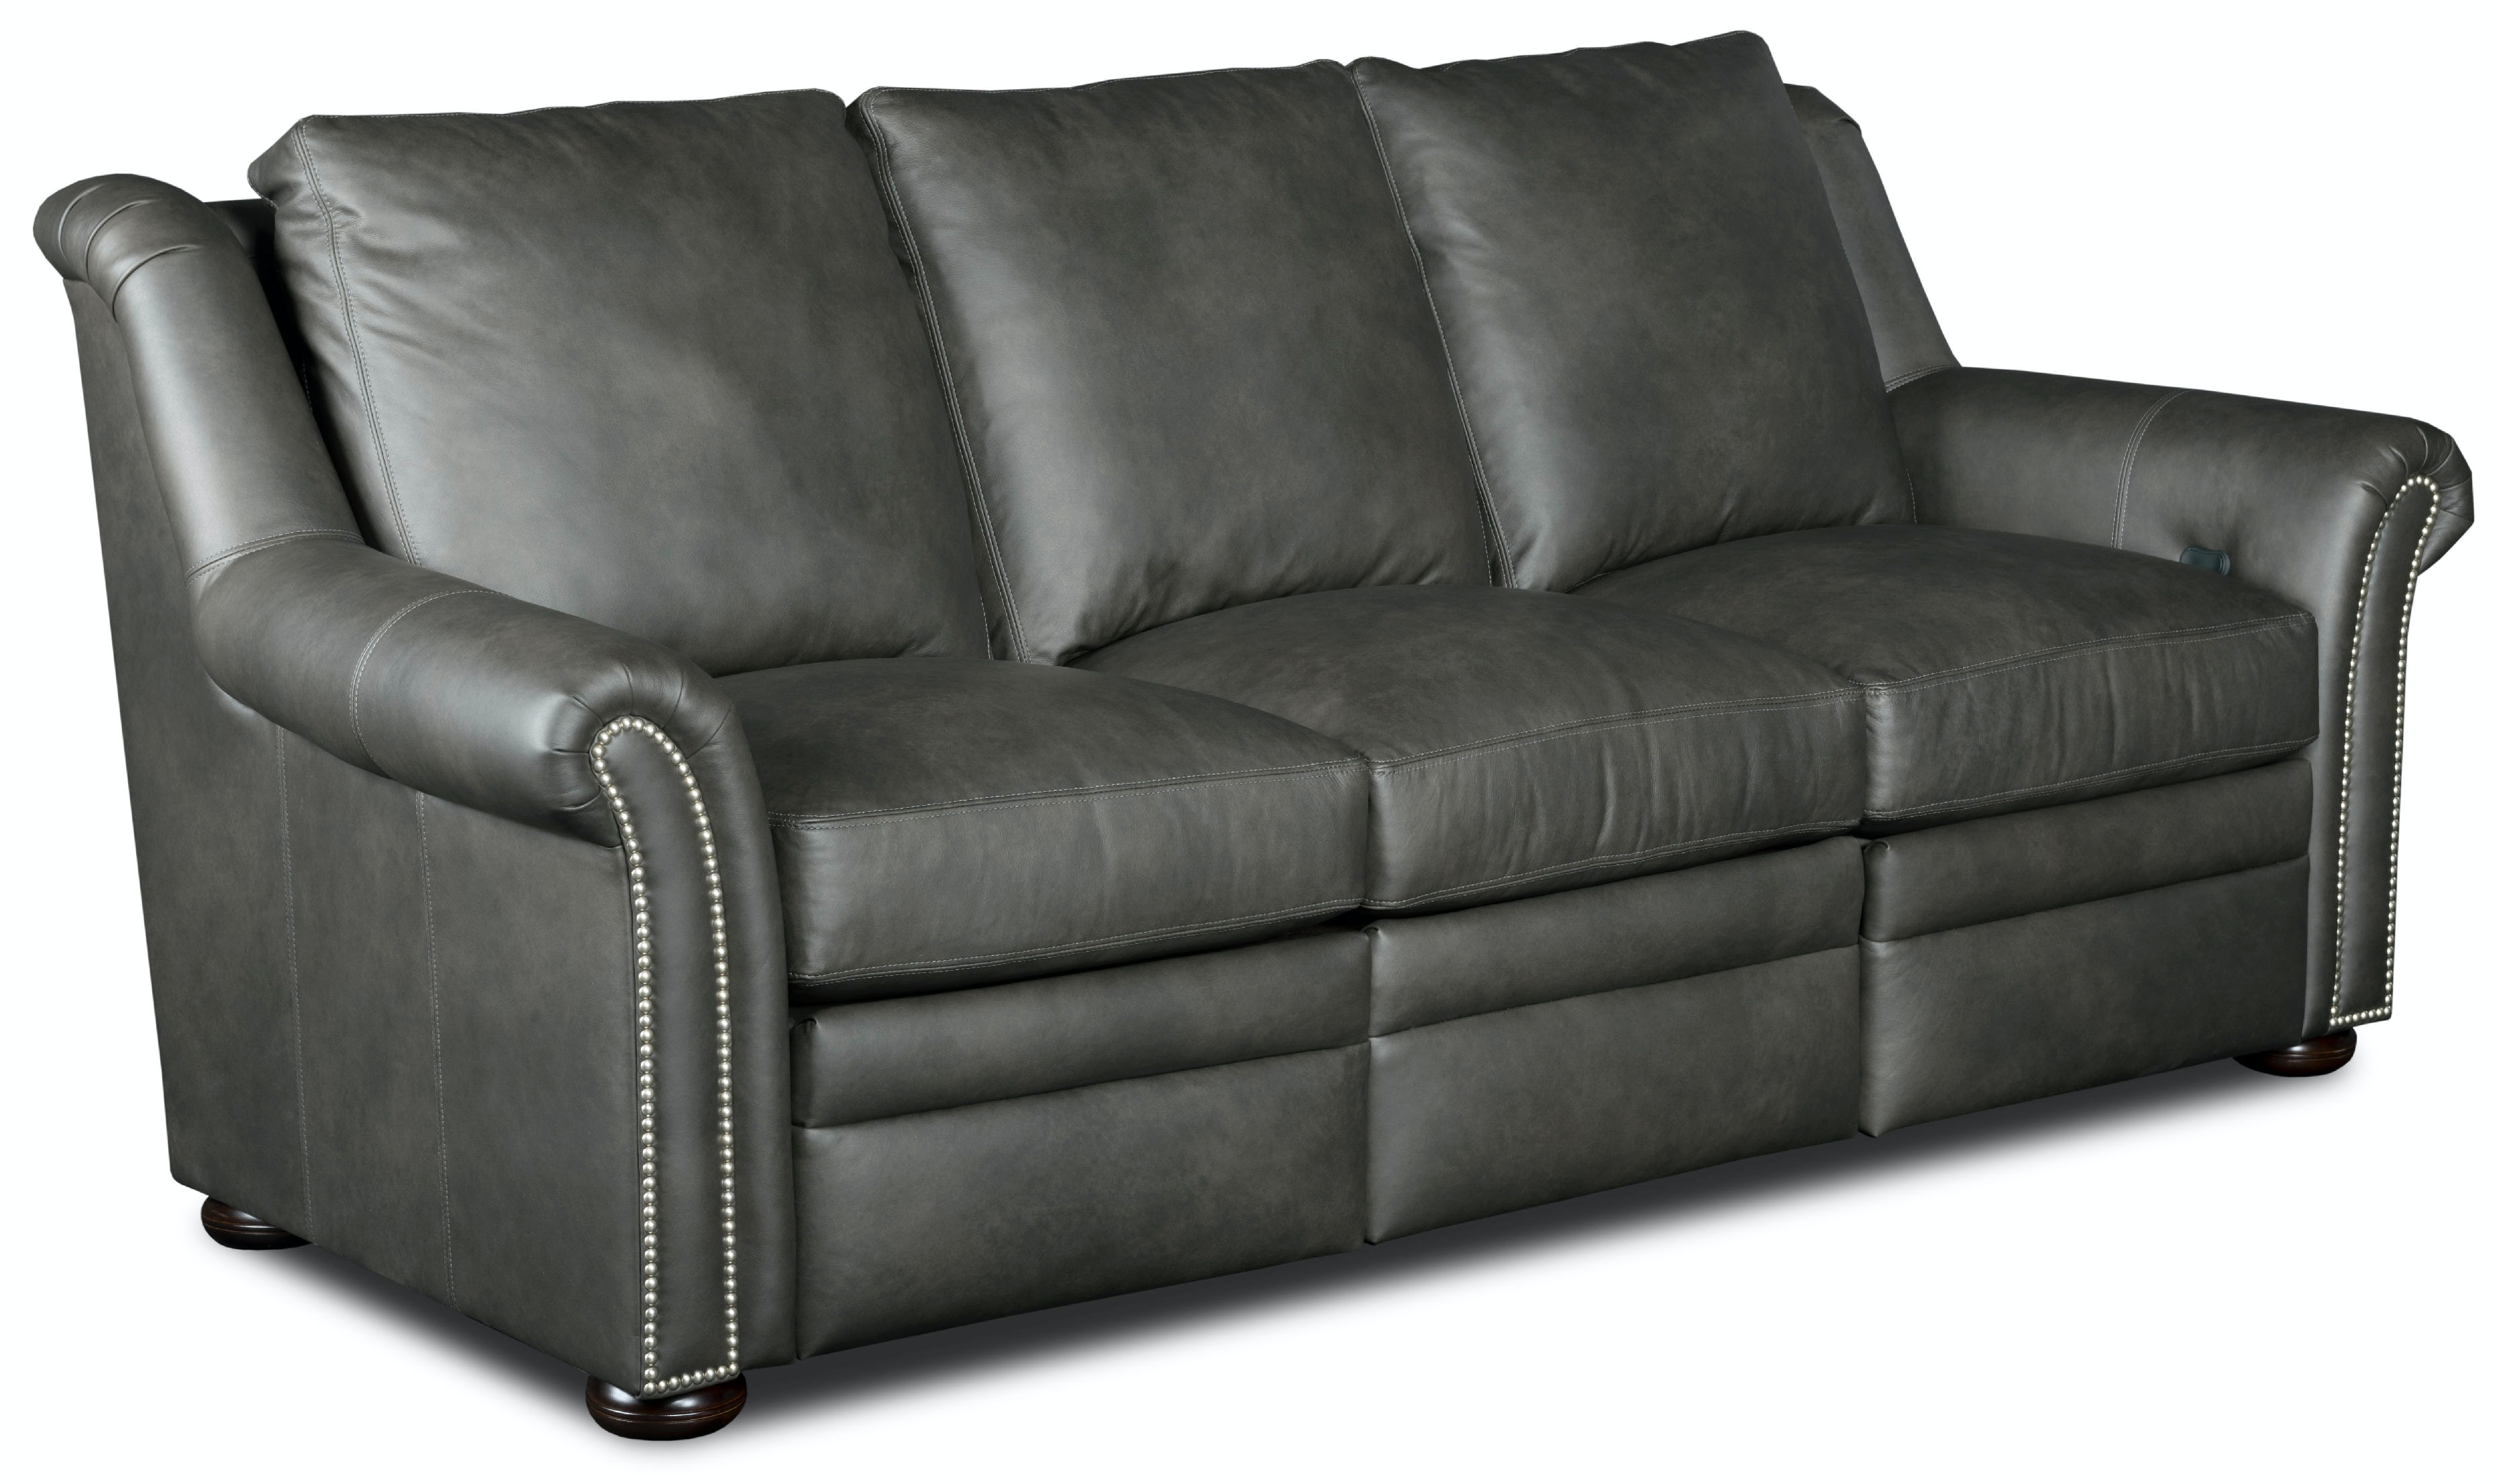 Delicieux Bradington Young Newman Sofa   Full Recline At Both Arms 916 90